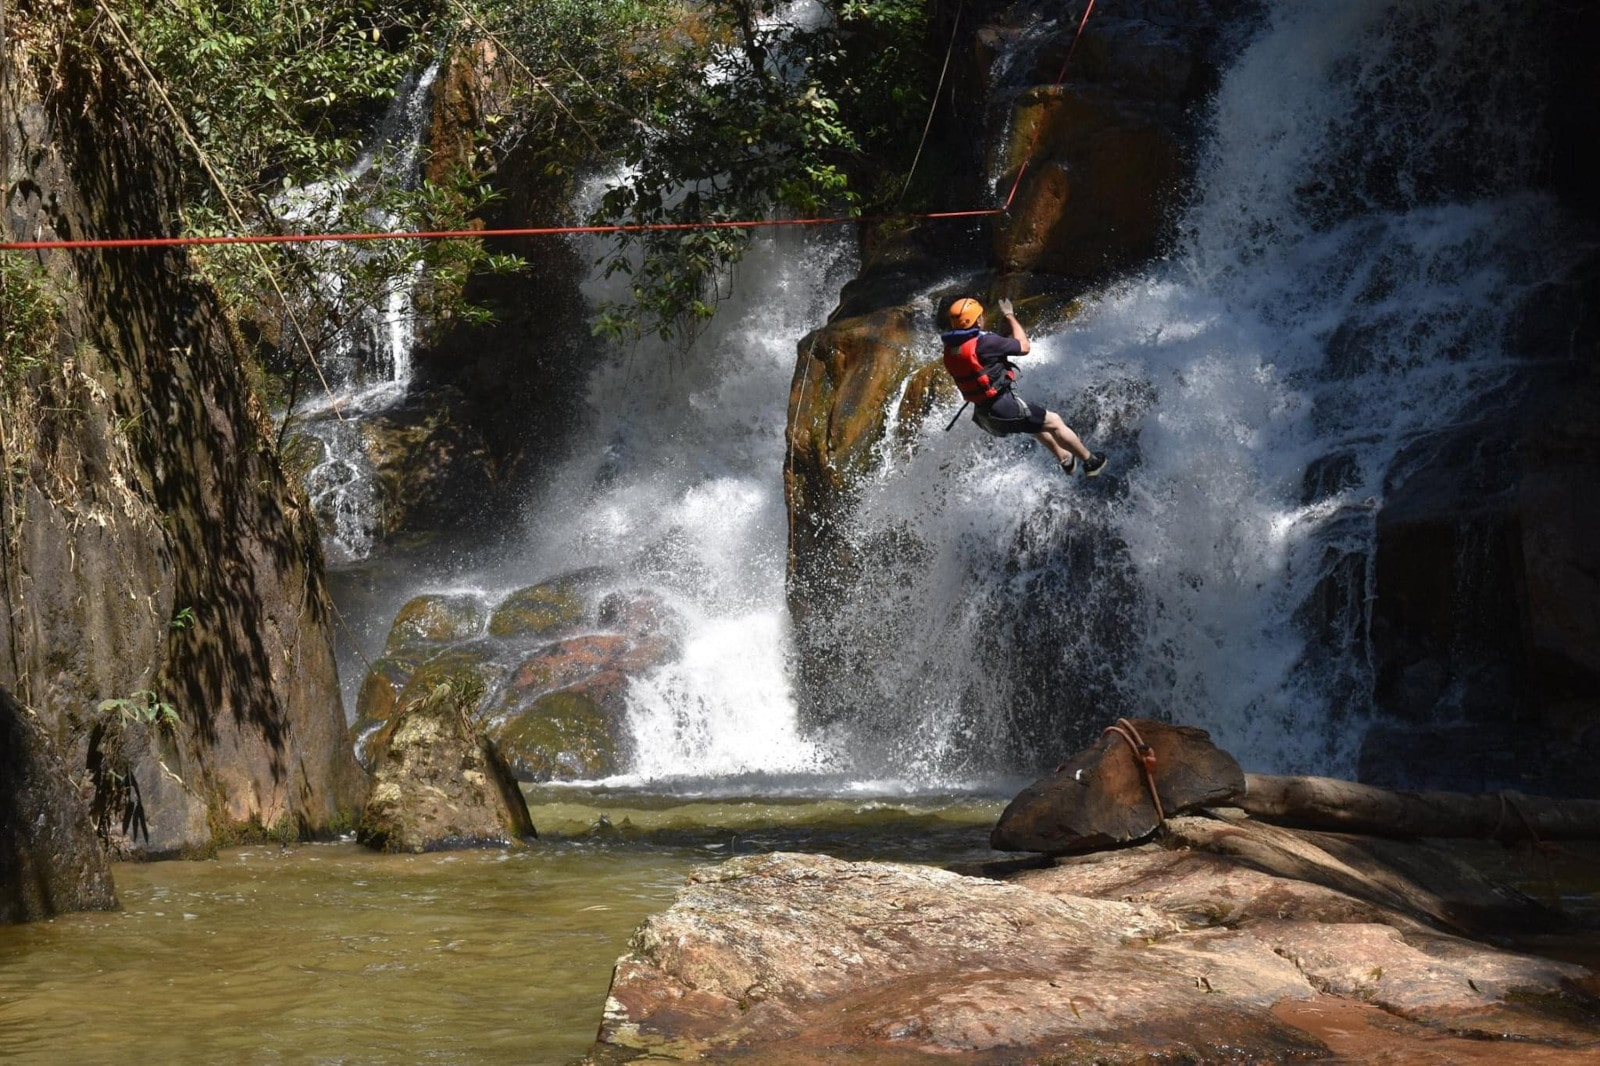 Image of a person on a zip line at Dalat Adventure Tours in Vietnam